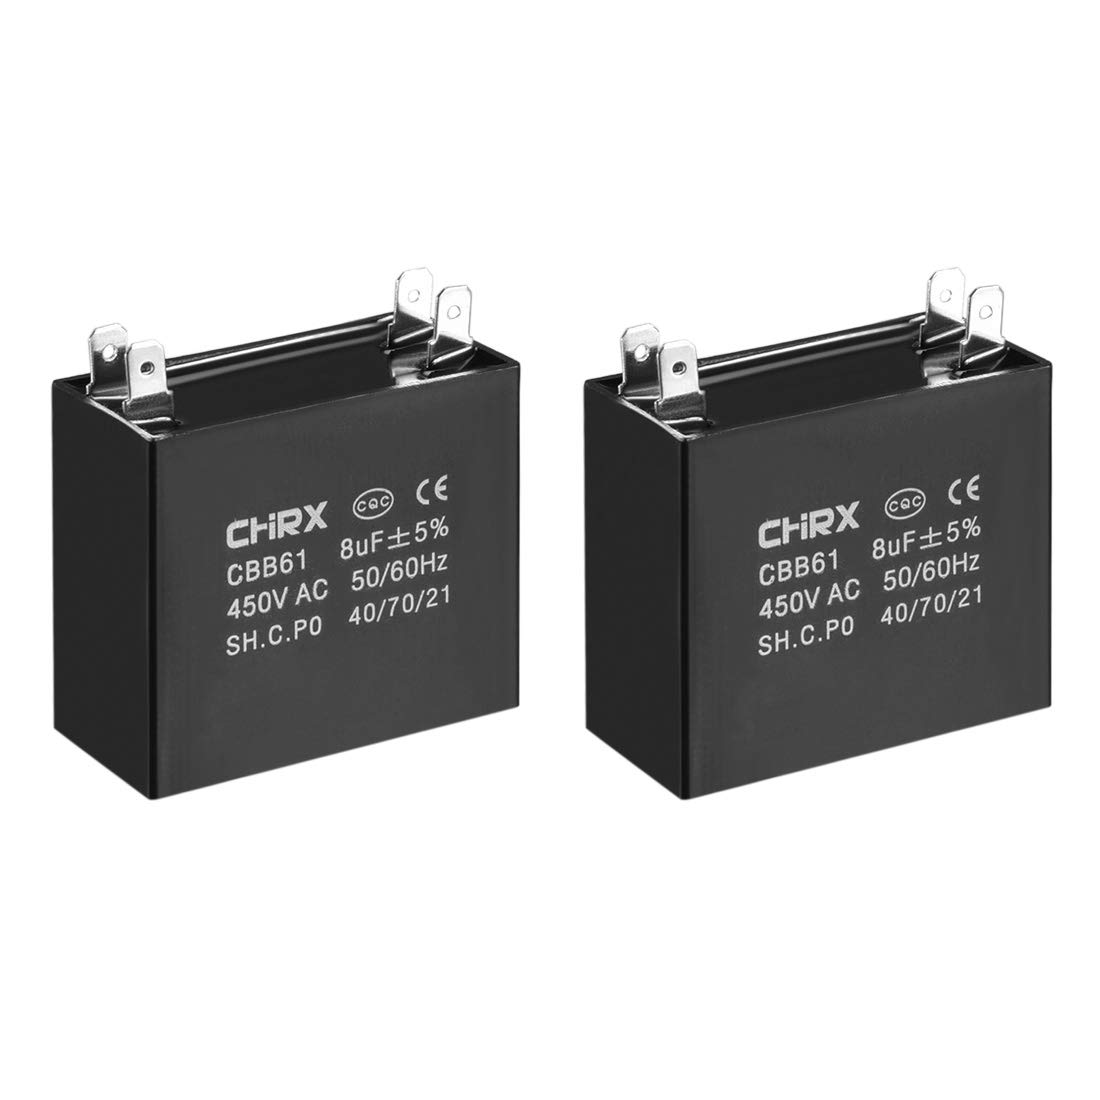 sourcing map CBB61 Run Capacitor 450V AC 8uF Doule Insert Metallized Polypropylene Film Capacitors for Ceiling Fan 2pcs